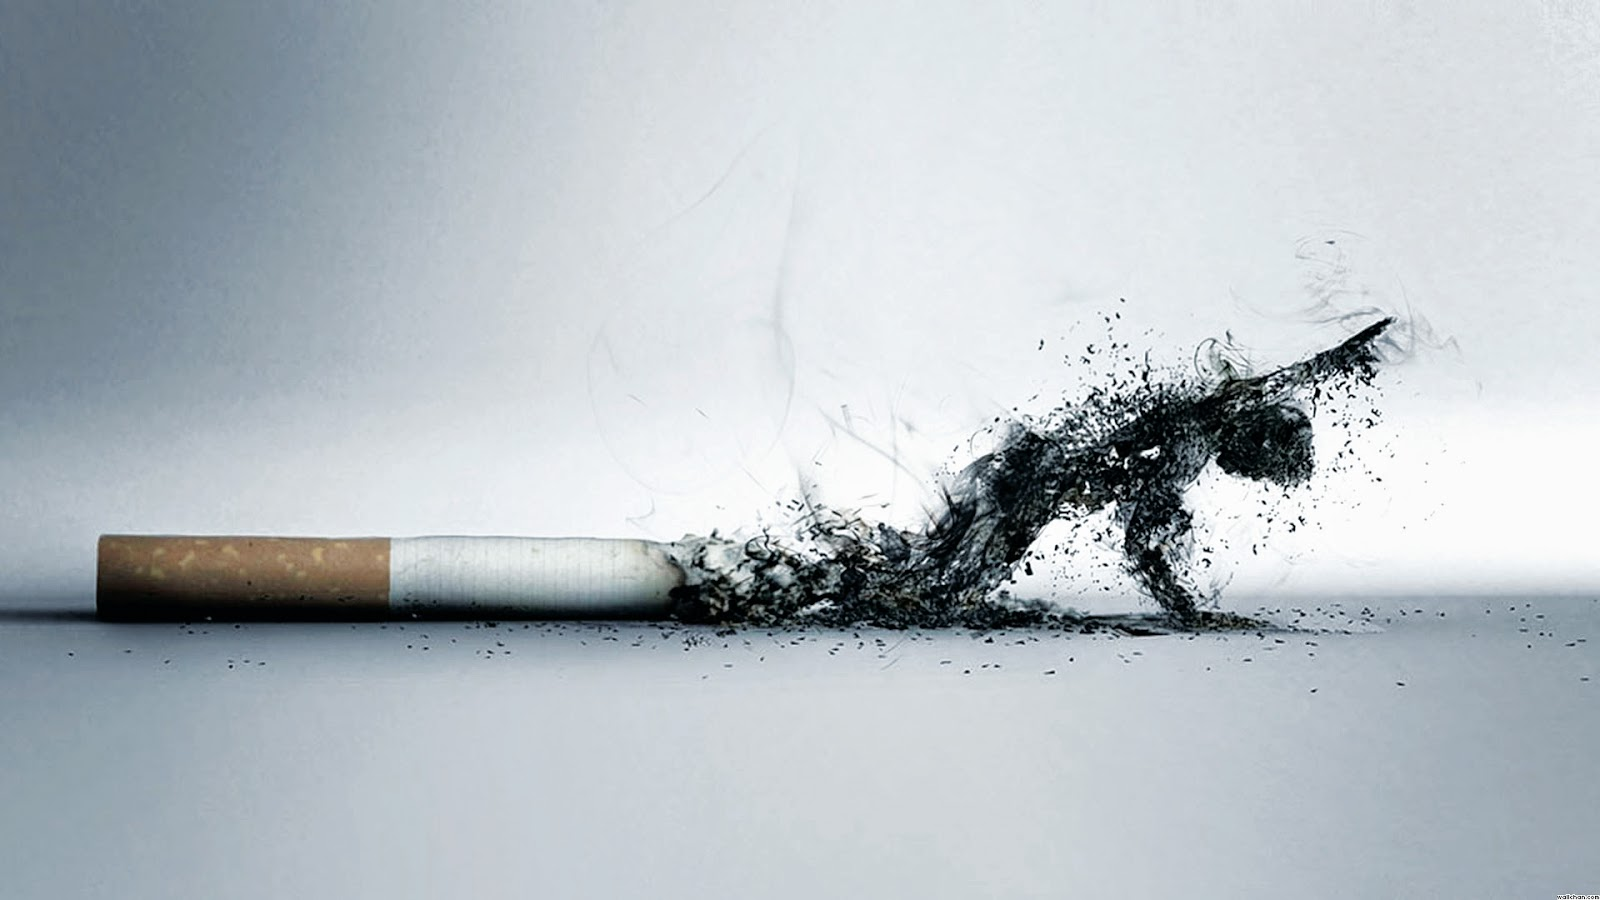 To stop smoking, nothing works as well as money